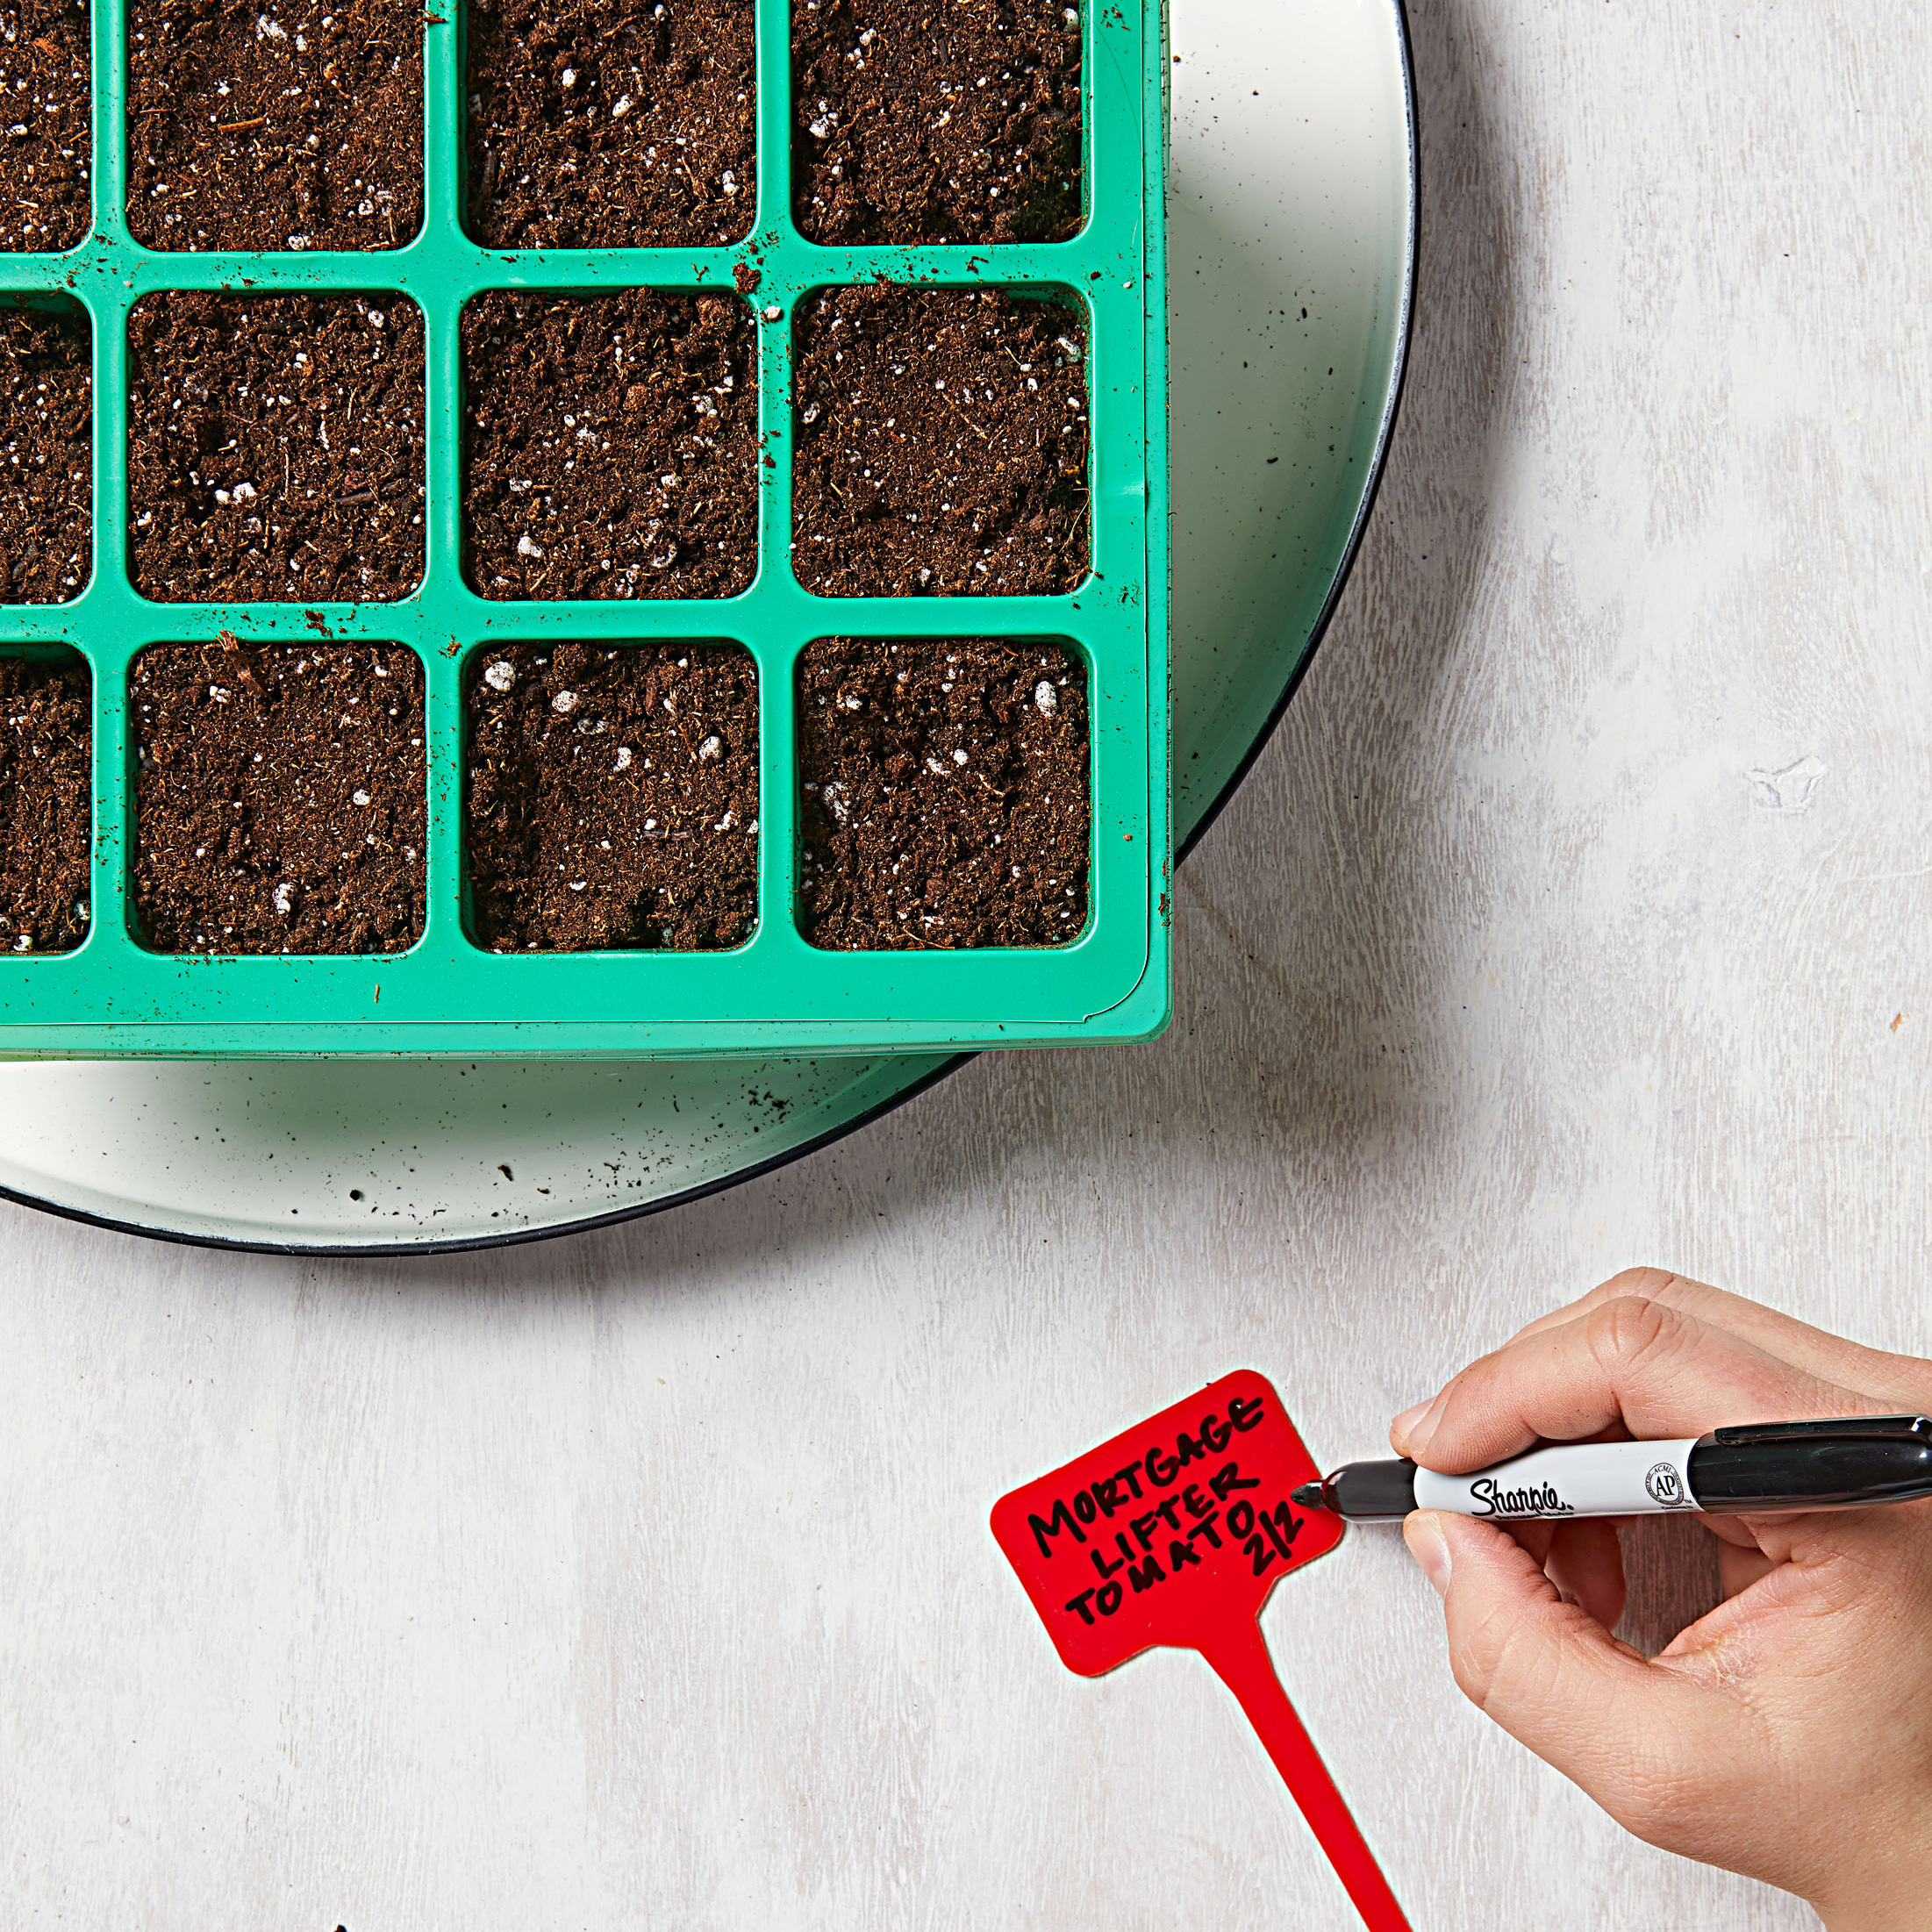 How to start seeds-Step 5